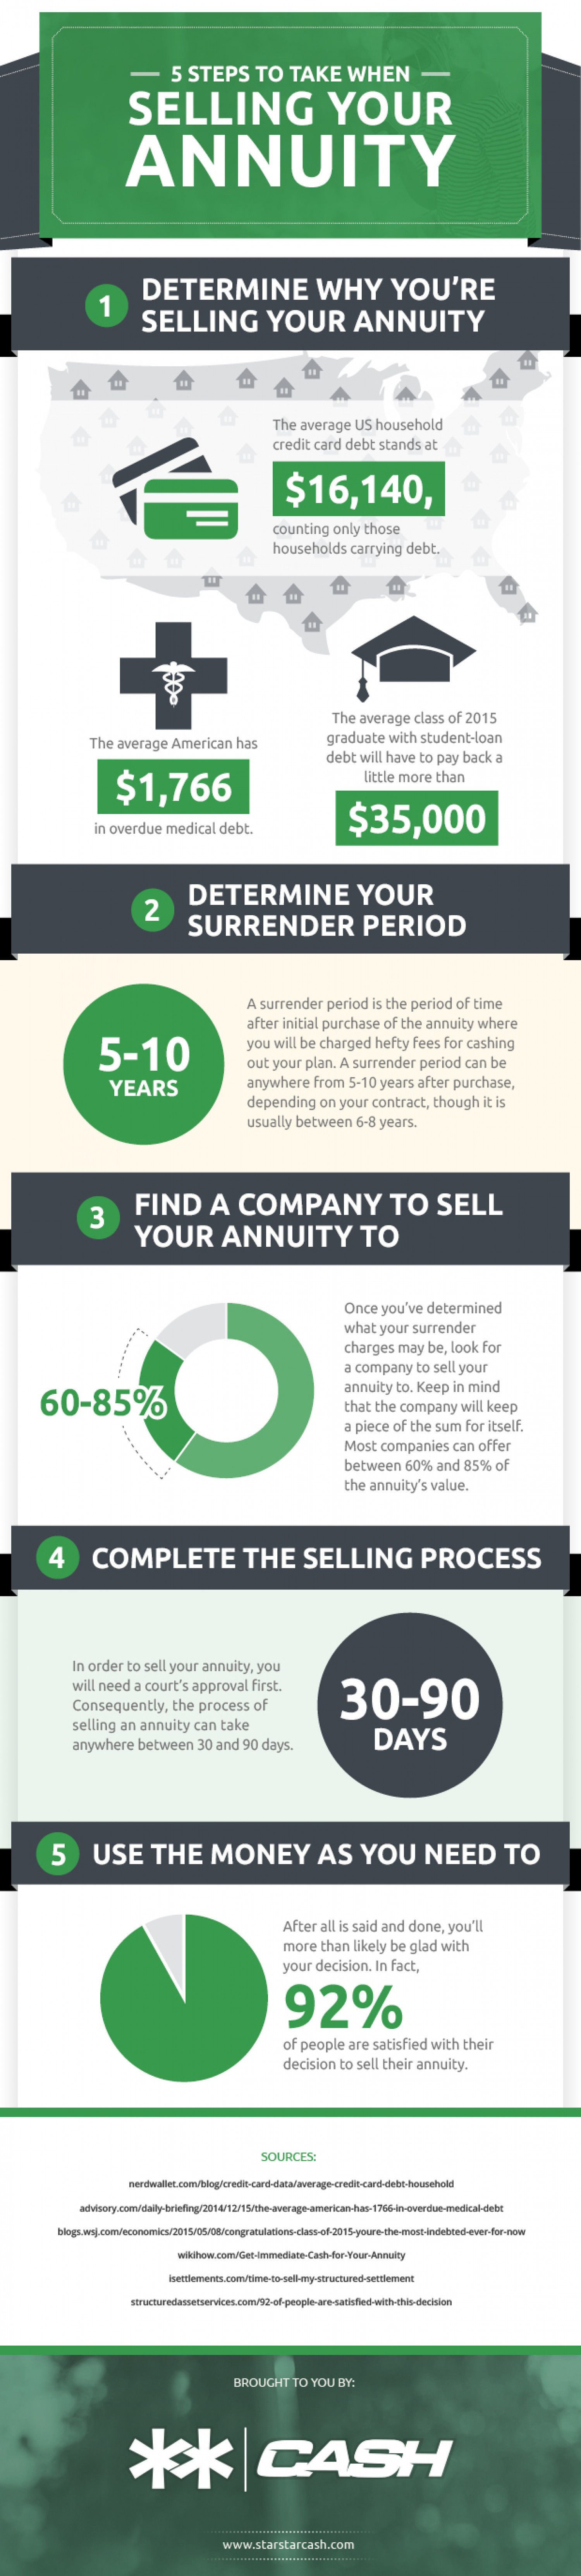 5 Steps To Take When Selling Your Annuity Infographic